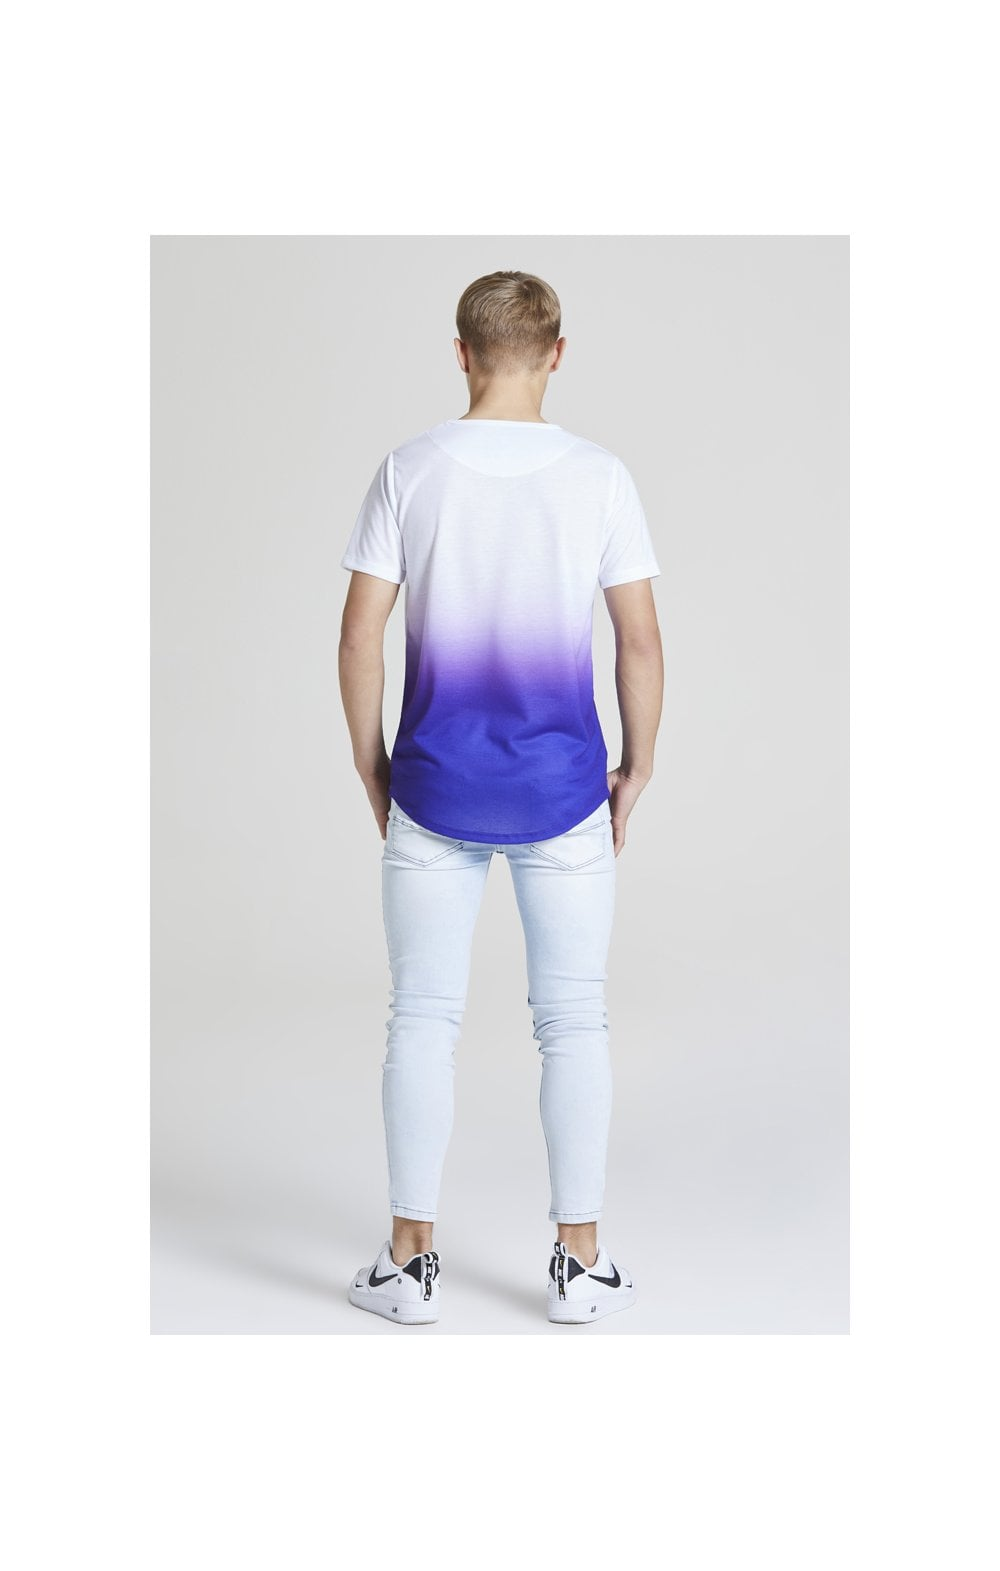 Illusive London Core Fade Tee – White & Purple (5)